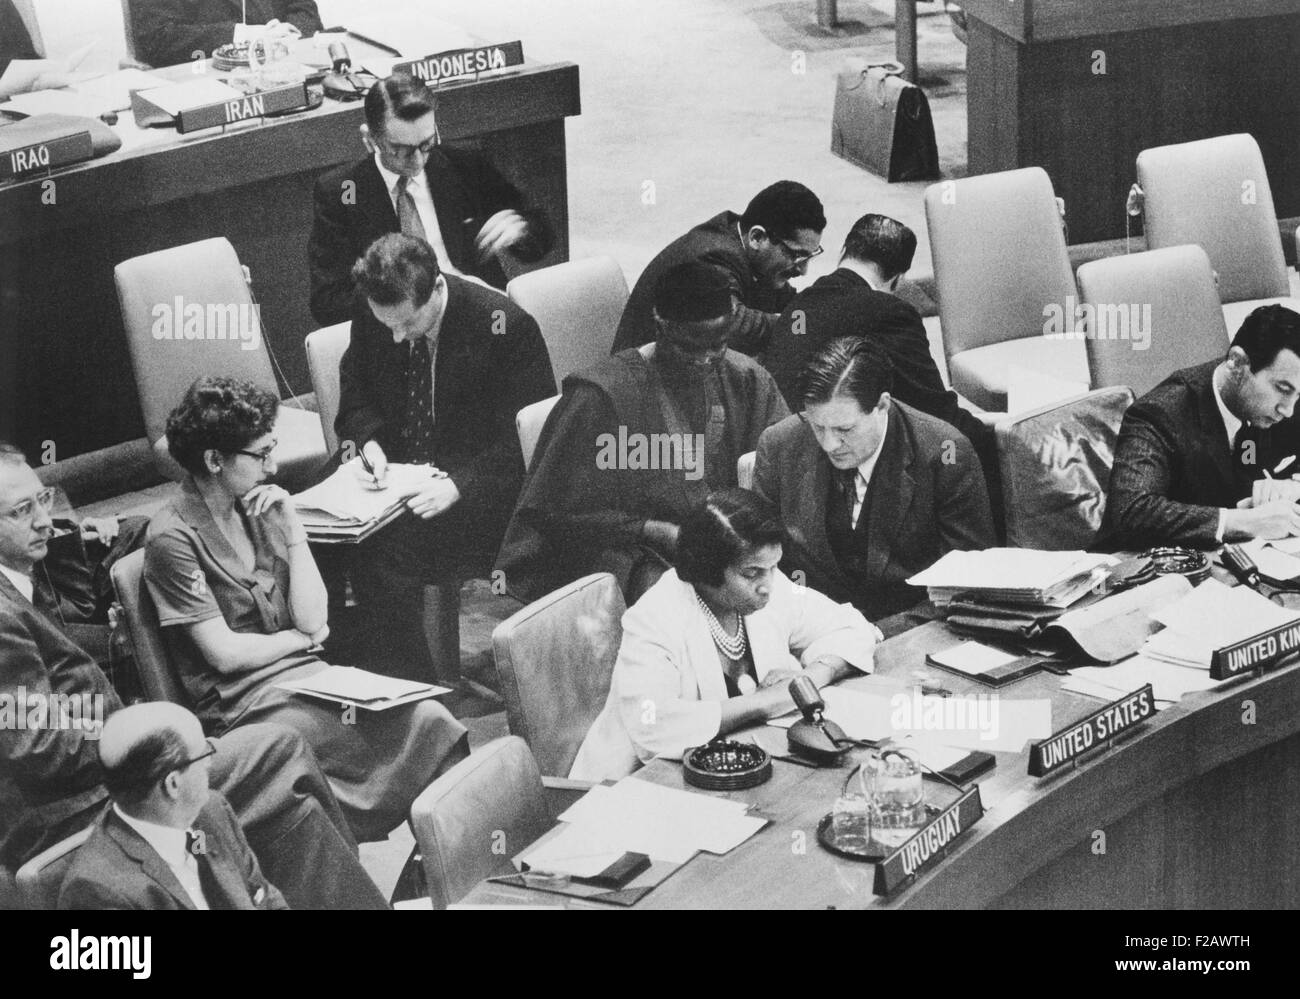 Marian Anderson, African American opera singer, as a delegate at the United Nations. She served on the UN Human - Stock Image